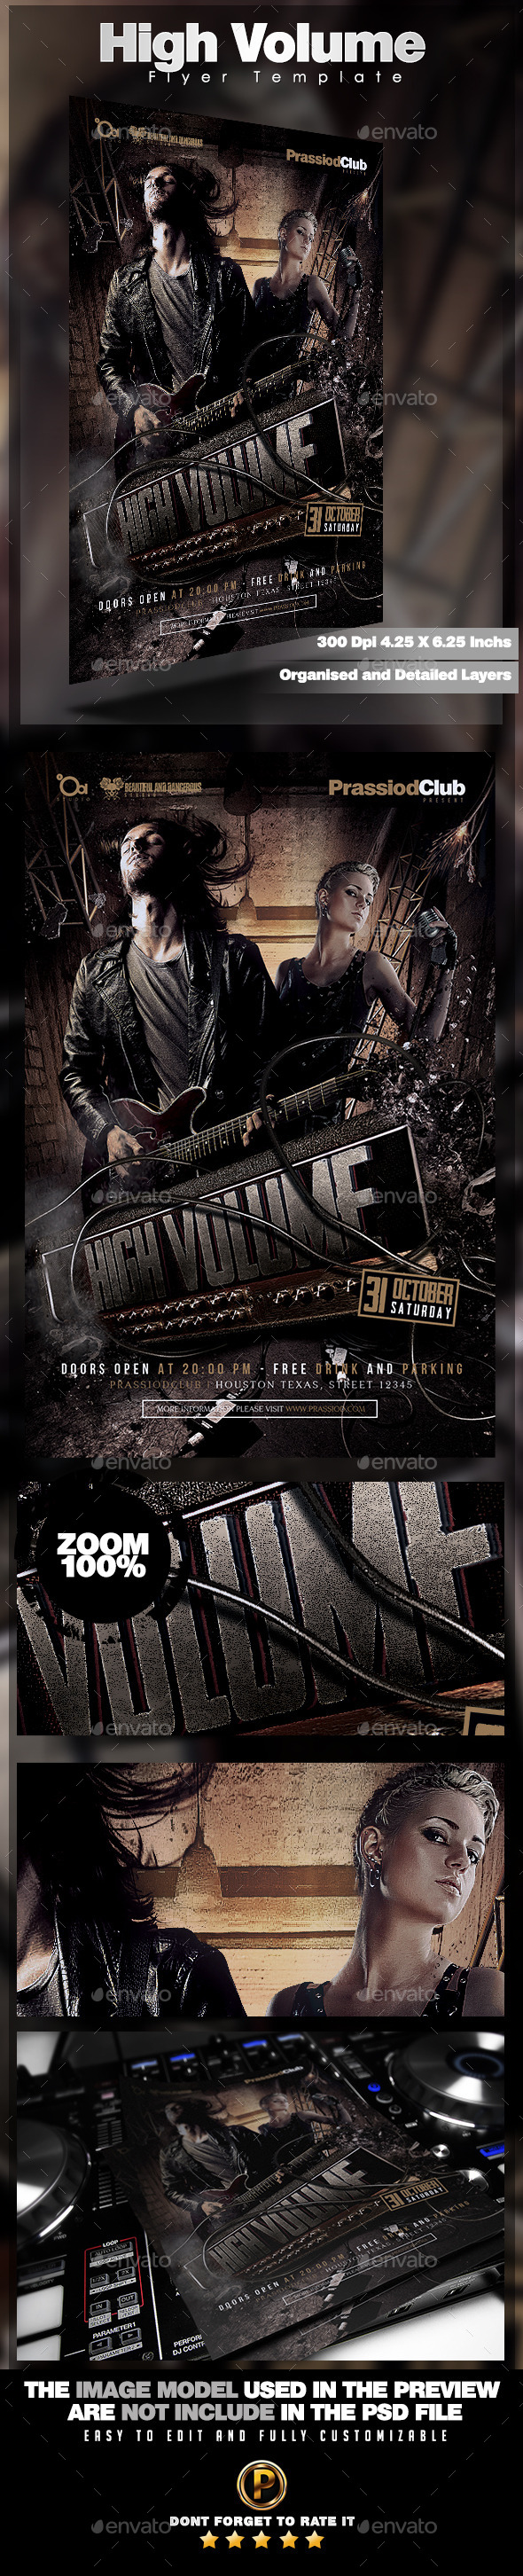 High Volume Flyer Template - Concerts Events